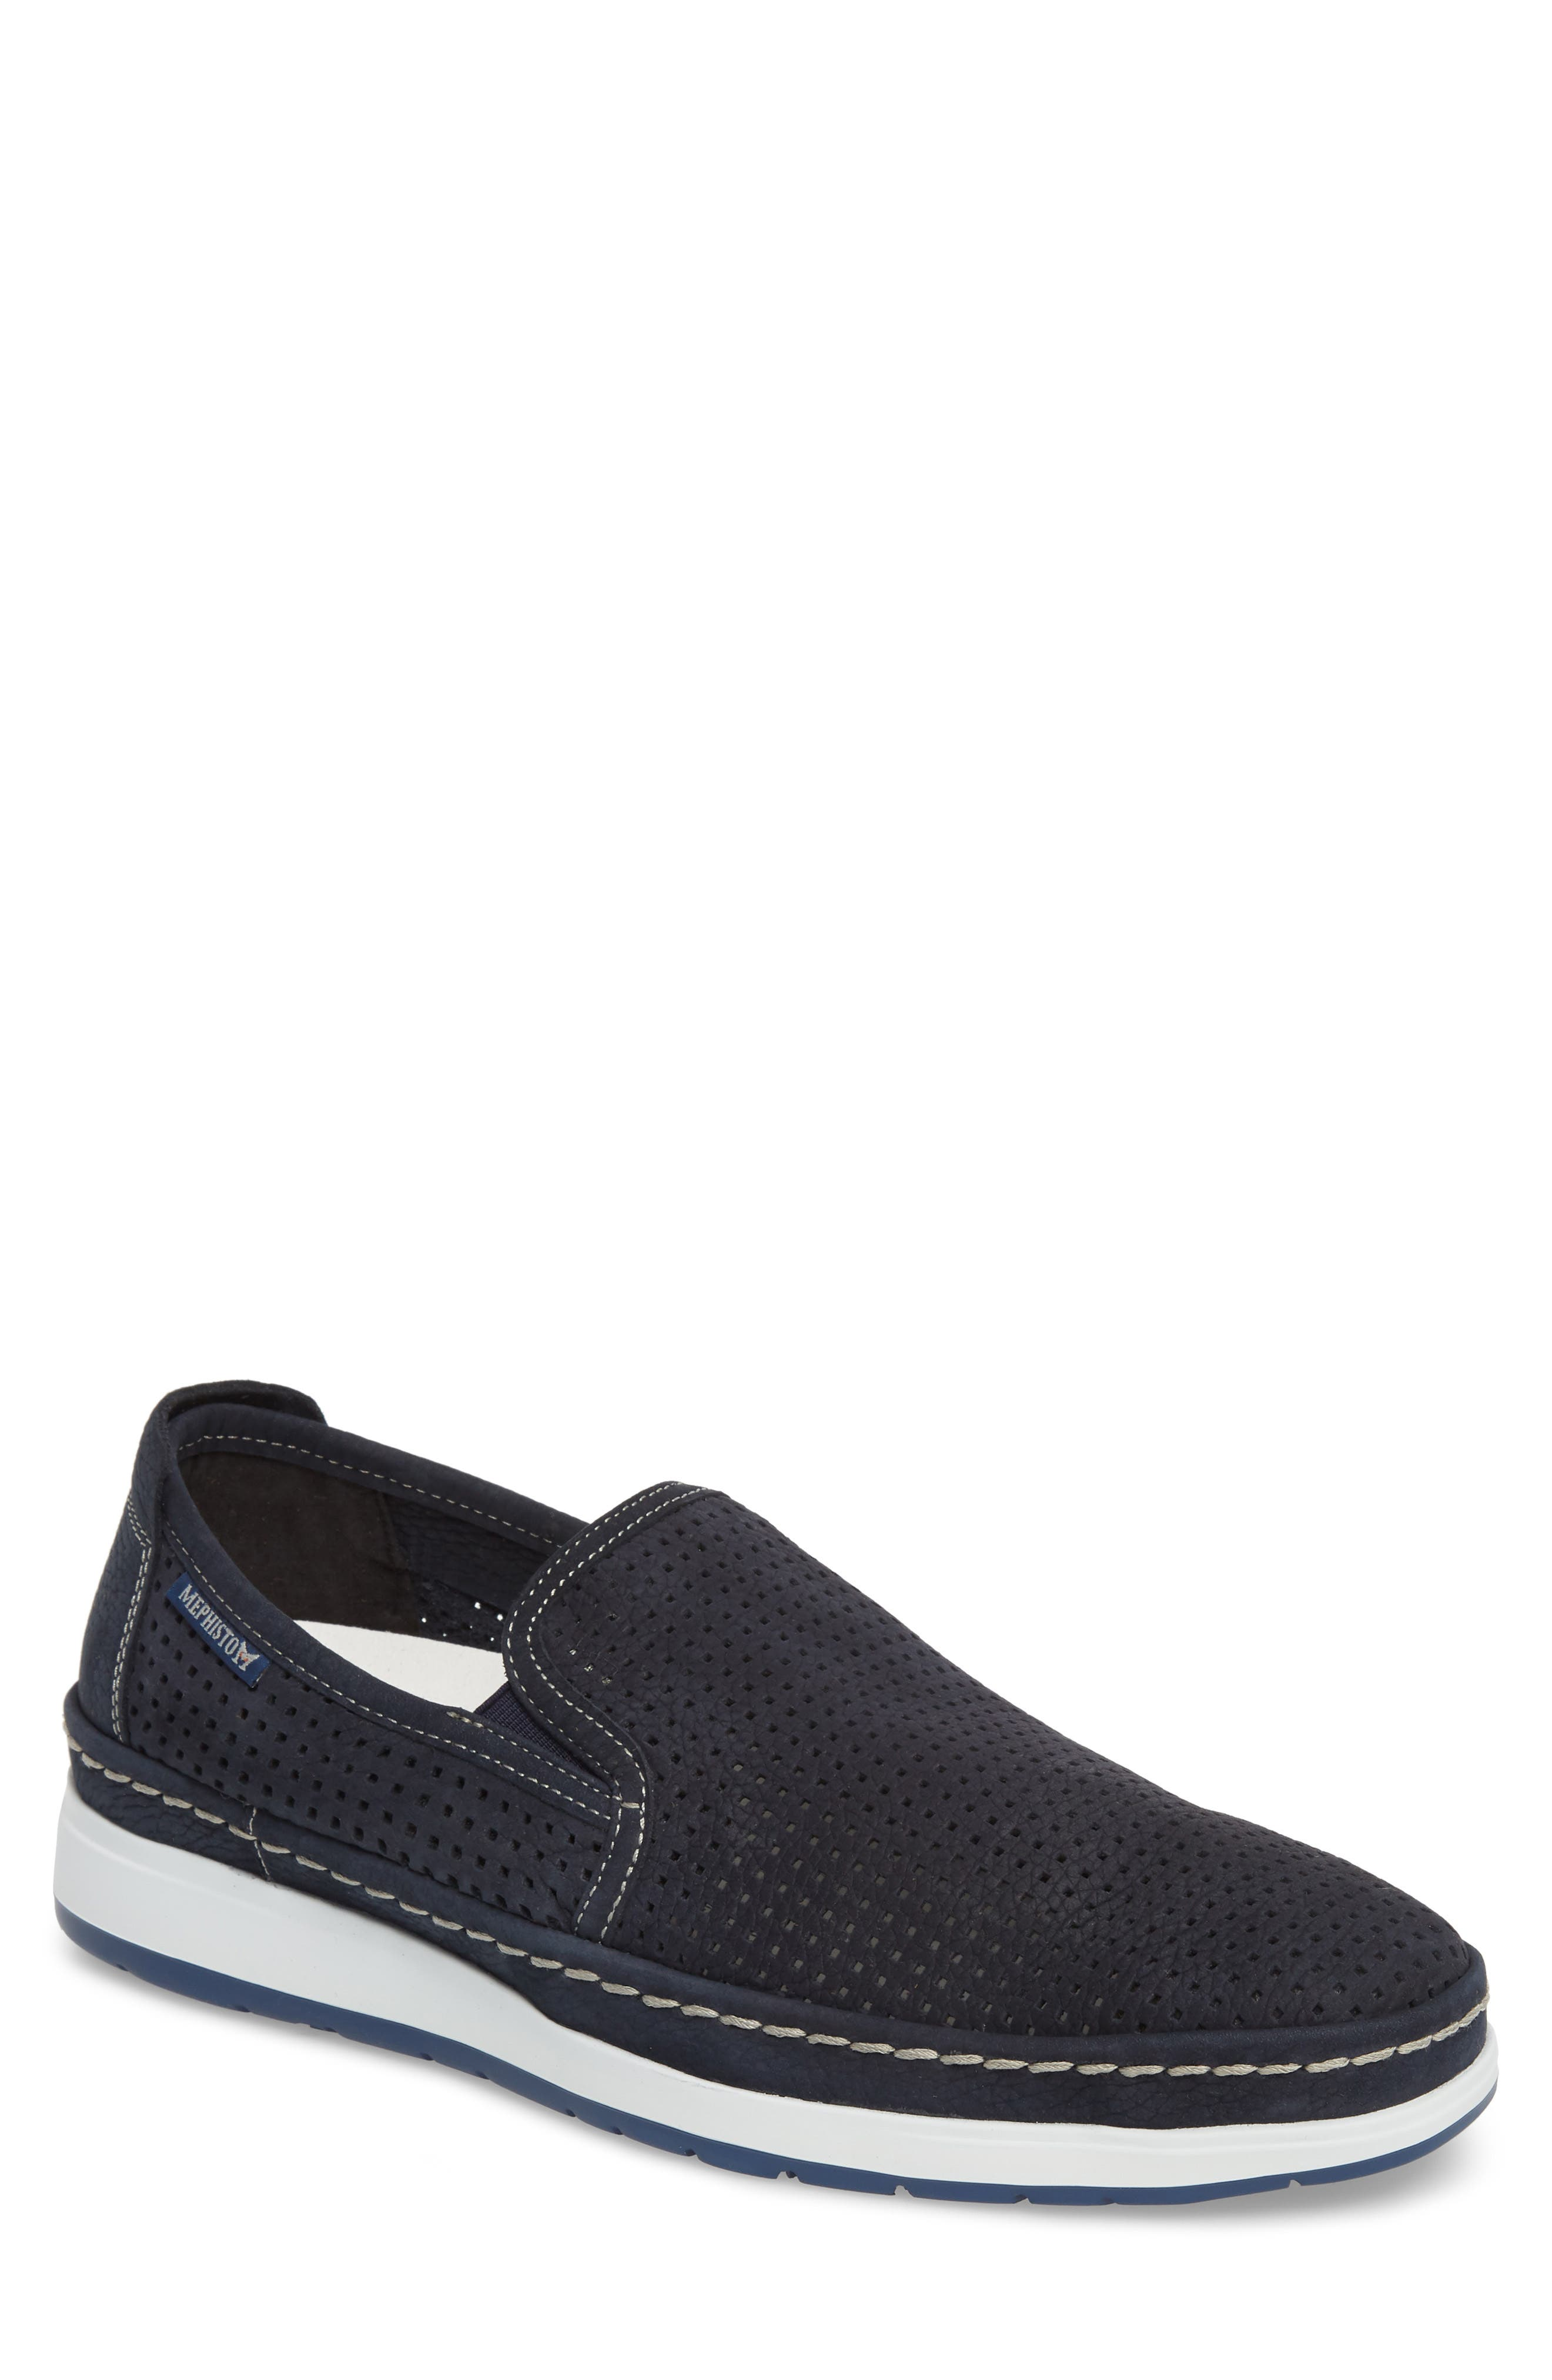 Hadrian Perforated Slip-On,                             Main thumbnail 1, color,                             Navy